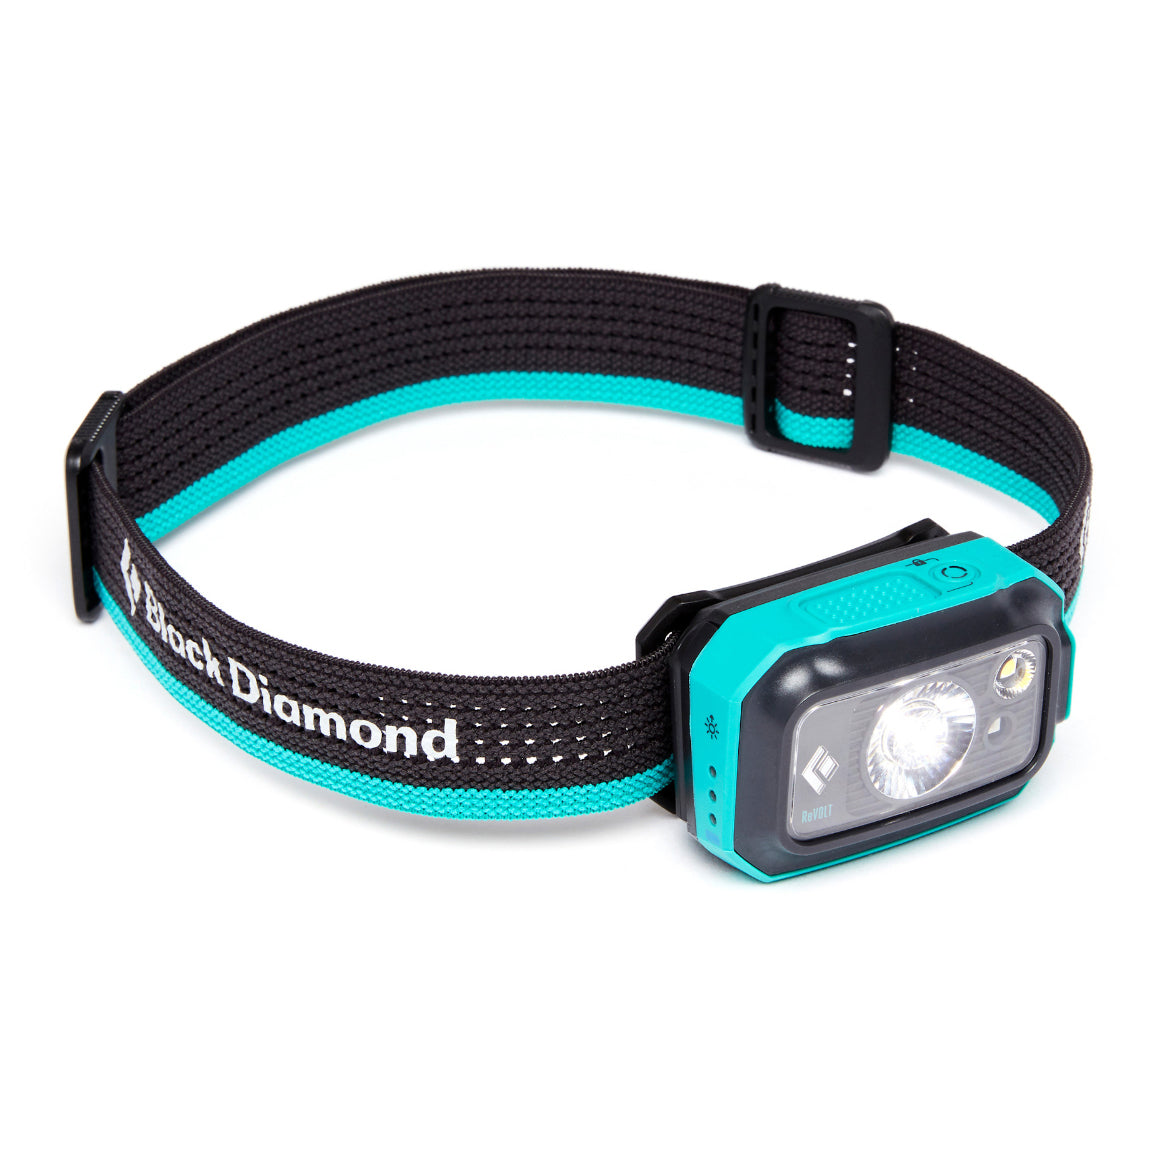 Black Diamond Revolt 350 Headlamp, front/side view in aqua blue colour